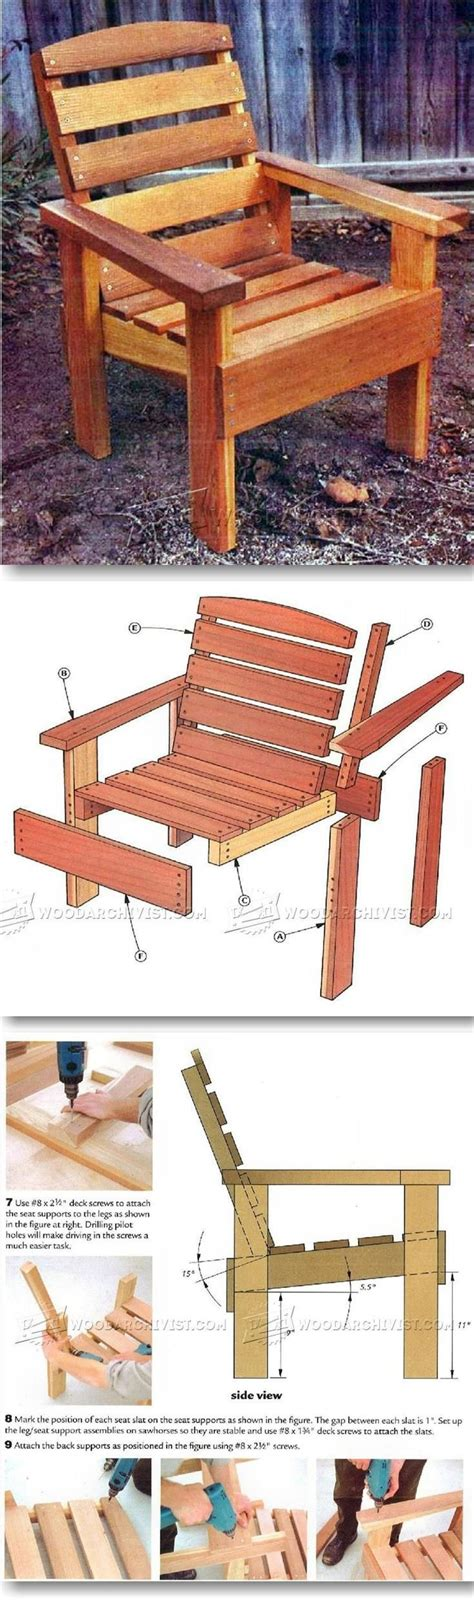 outdoor furniture plans ideas  pinterest